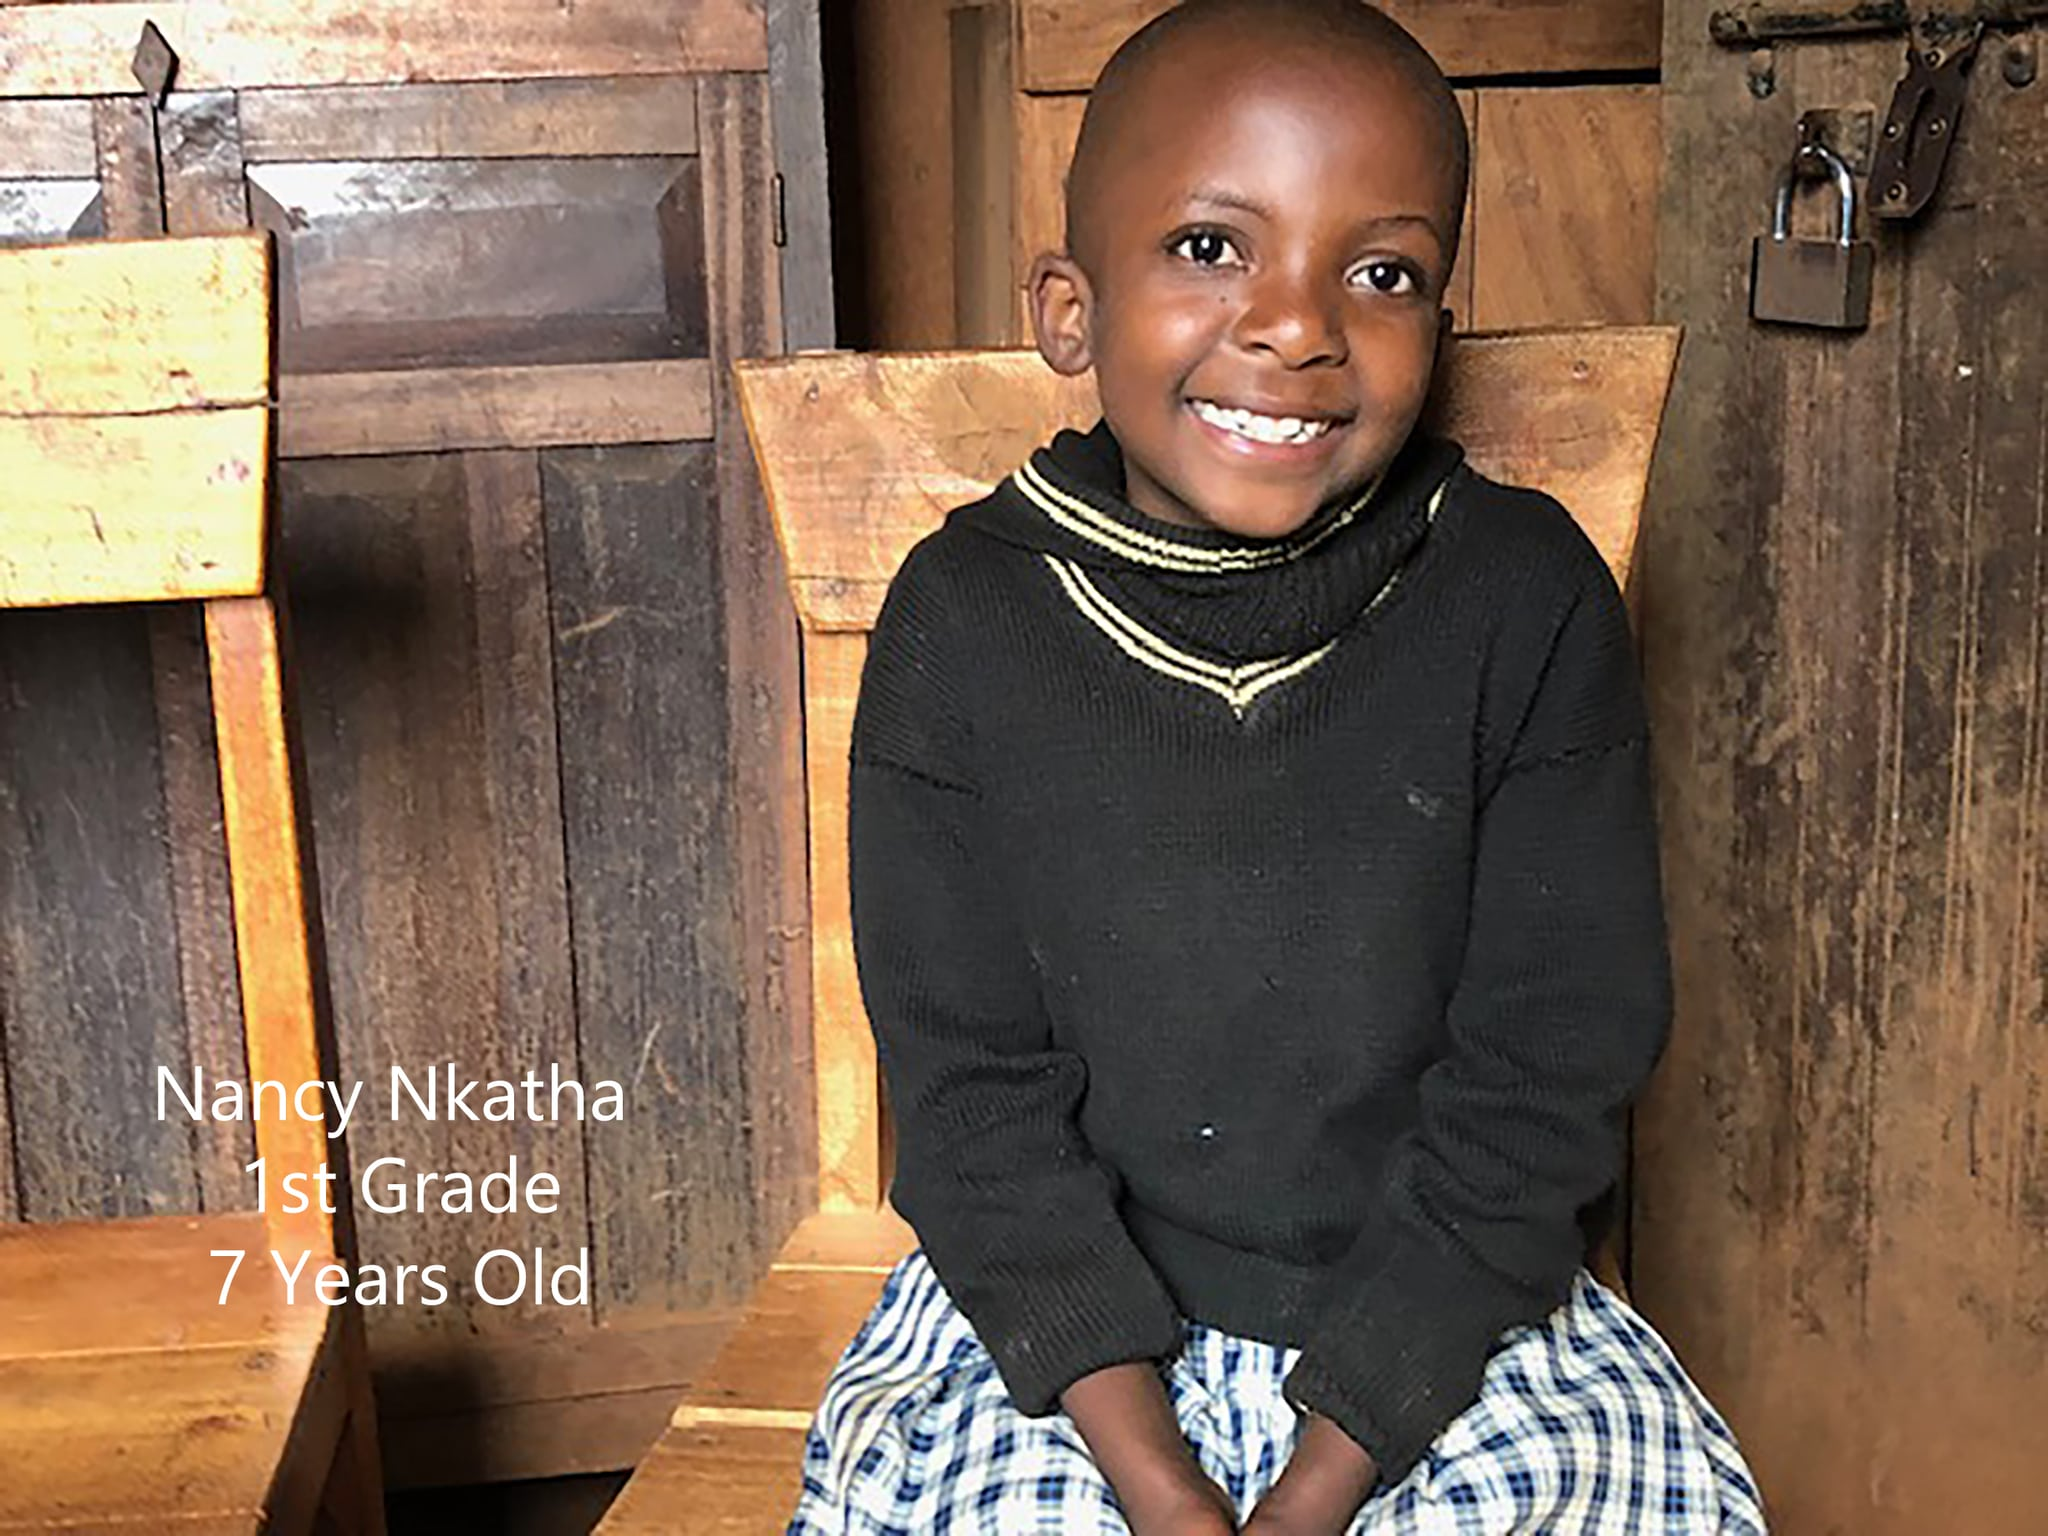 Just sponsored!  Nkatha, orphaned and living with her old, jobless grandmother, can now live and dream with Matanya's Hope.  Sponsorship means she will go to school, enjoy daily nutrition, have clothing, shoes, school supplies and most of all... SHE CAN HOPE.